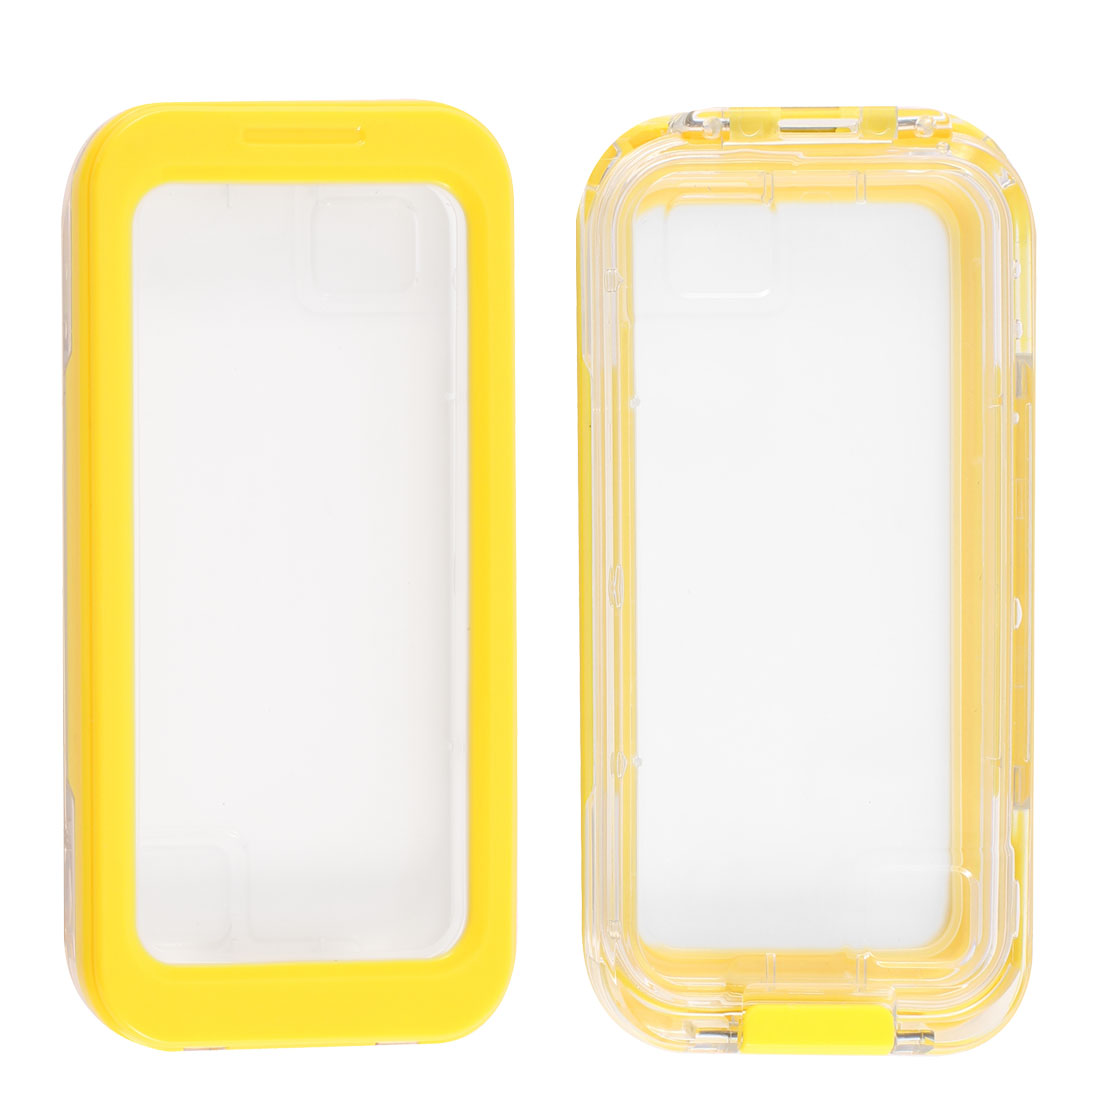 Yellow Waterproof Snow Proof Case Cover Protector for iPhone 4 4G 4S 5 5G 4GS